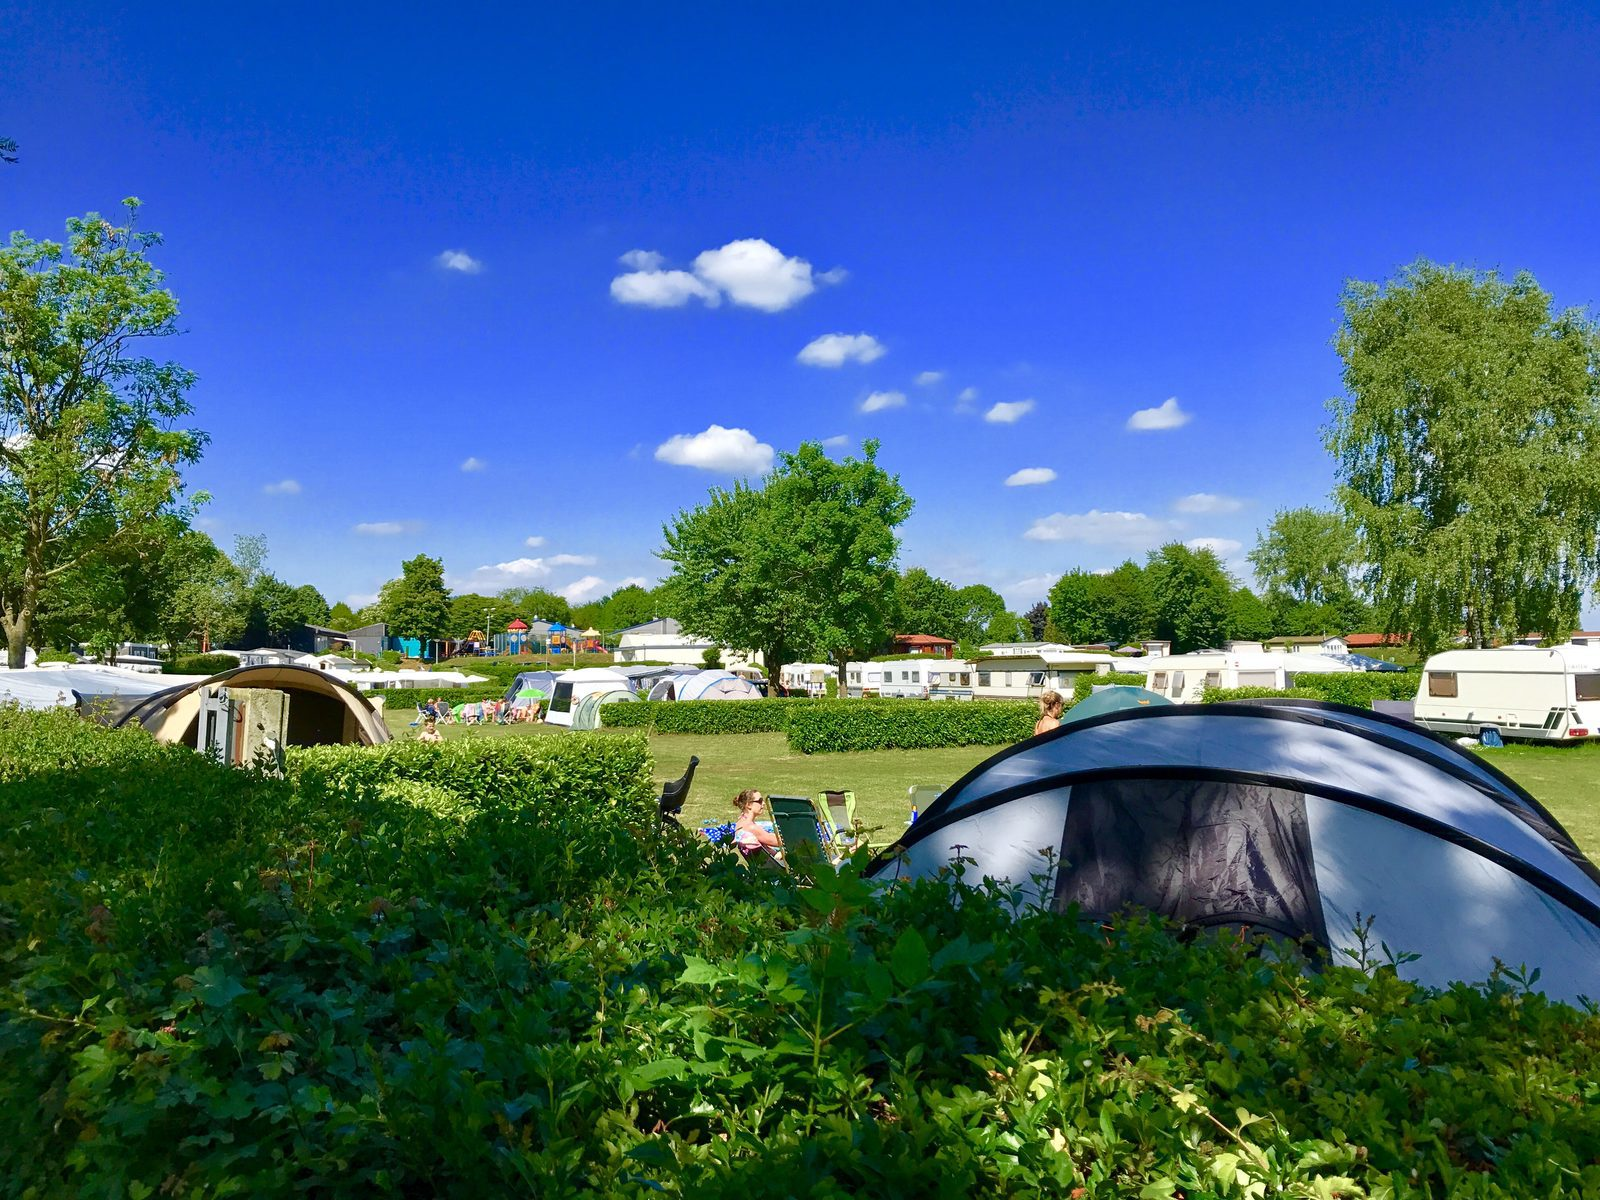 Camping on Succes Holidayparcs